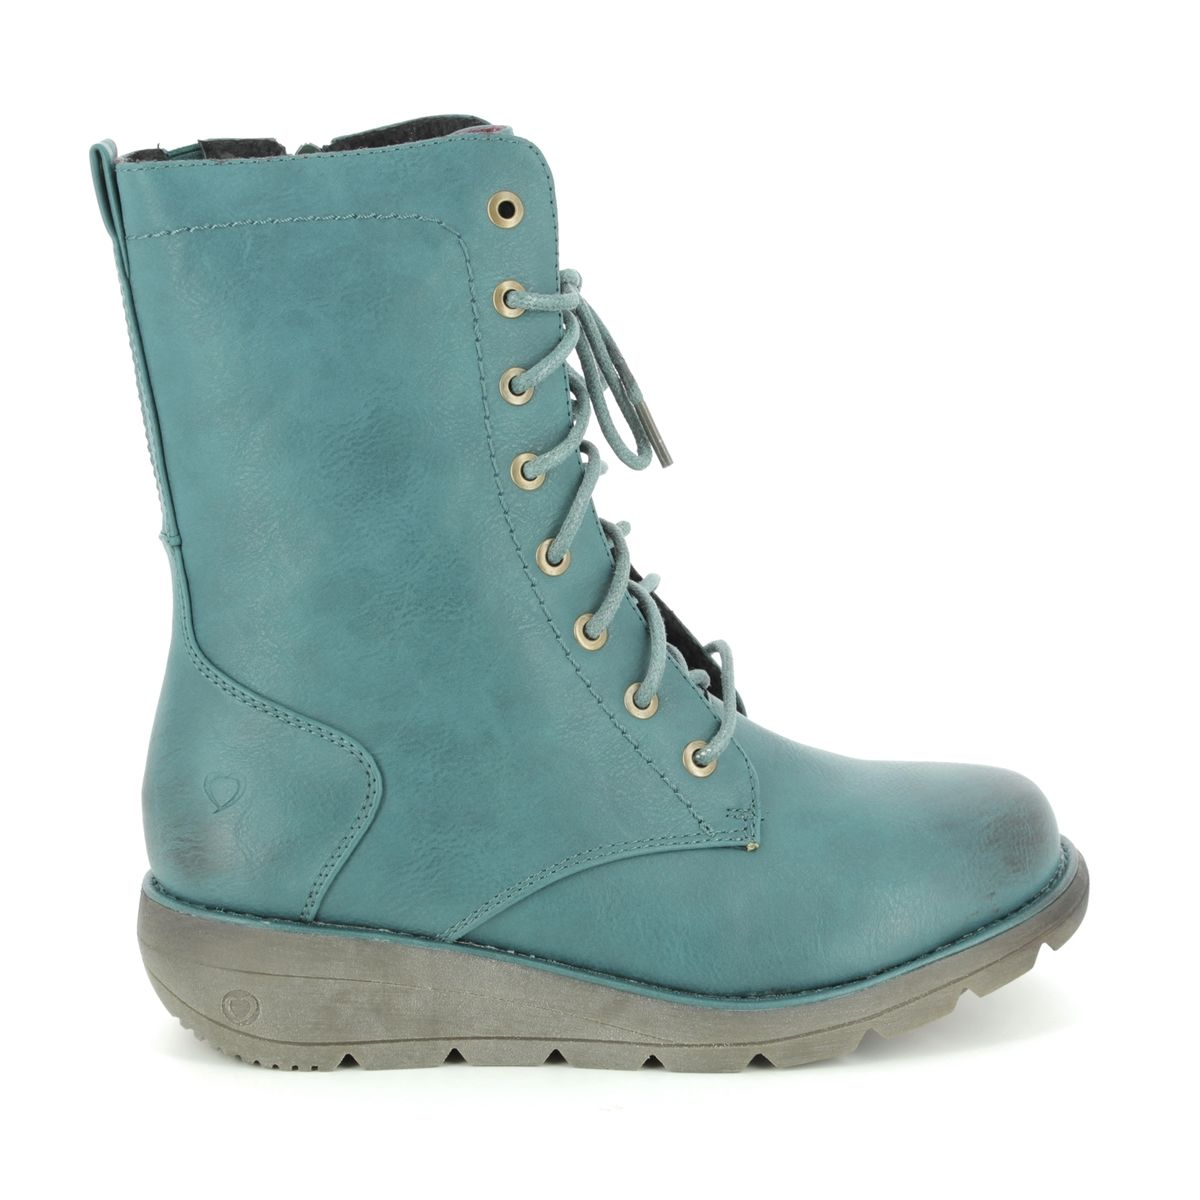 f551999c51a2 Heavenly Feet Ankle Boots - Teal blue - 8516 73 WALKER 2